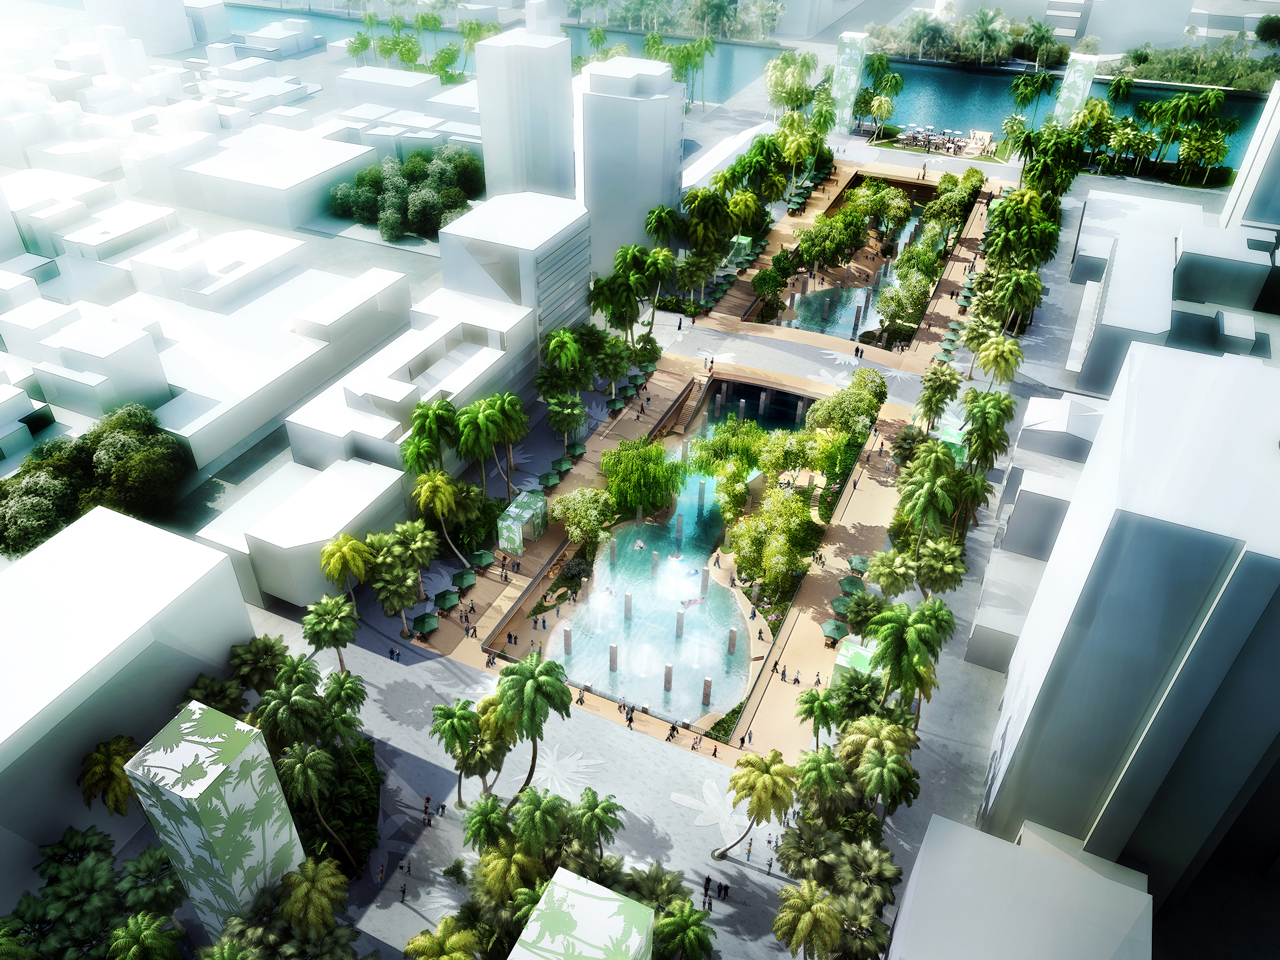 MVRDV wins competition Tainan, Taiwan urban lagoon transformation